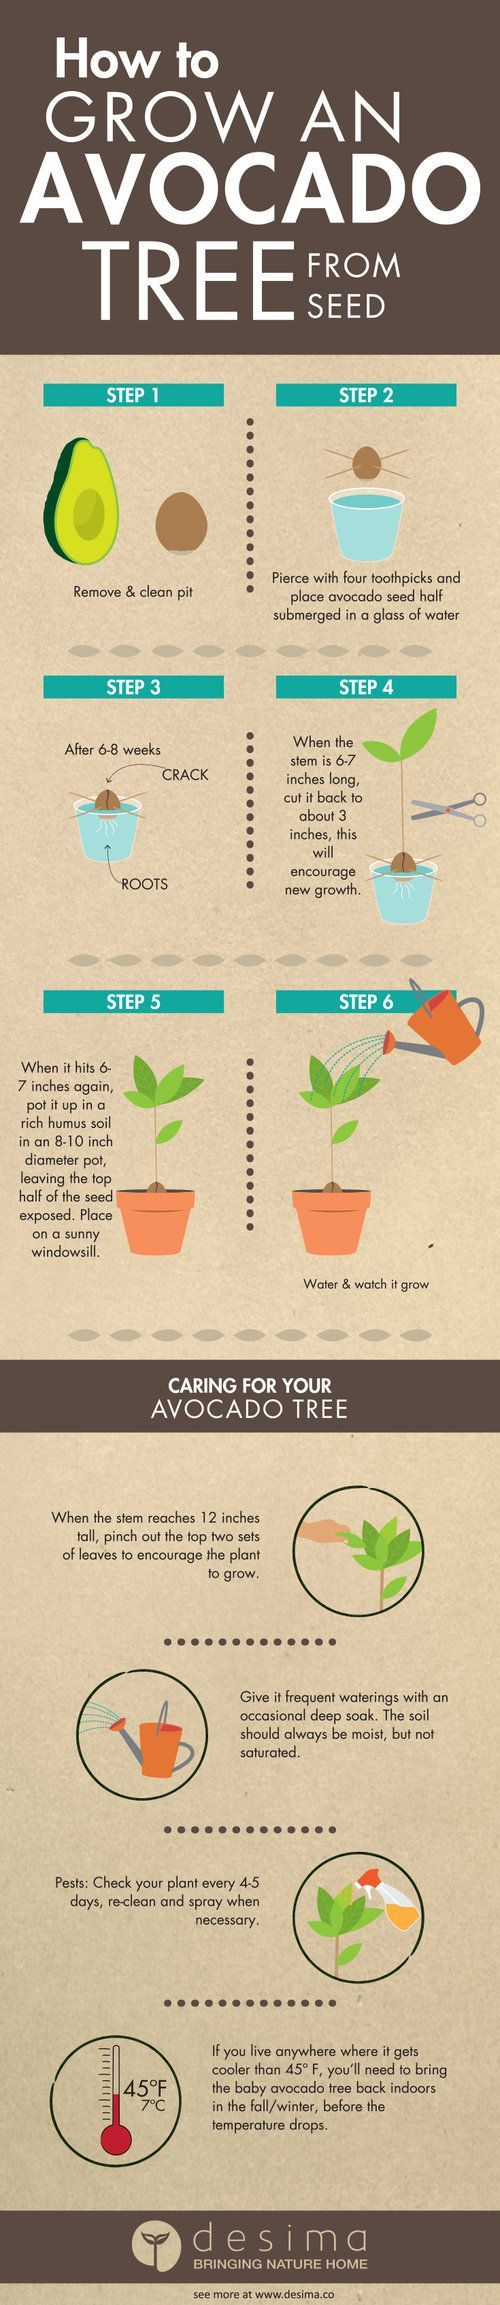 Infographic on how to grow an avocado tree from seed. – Márta Ferenc